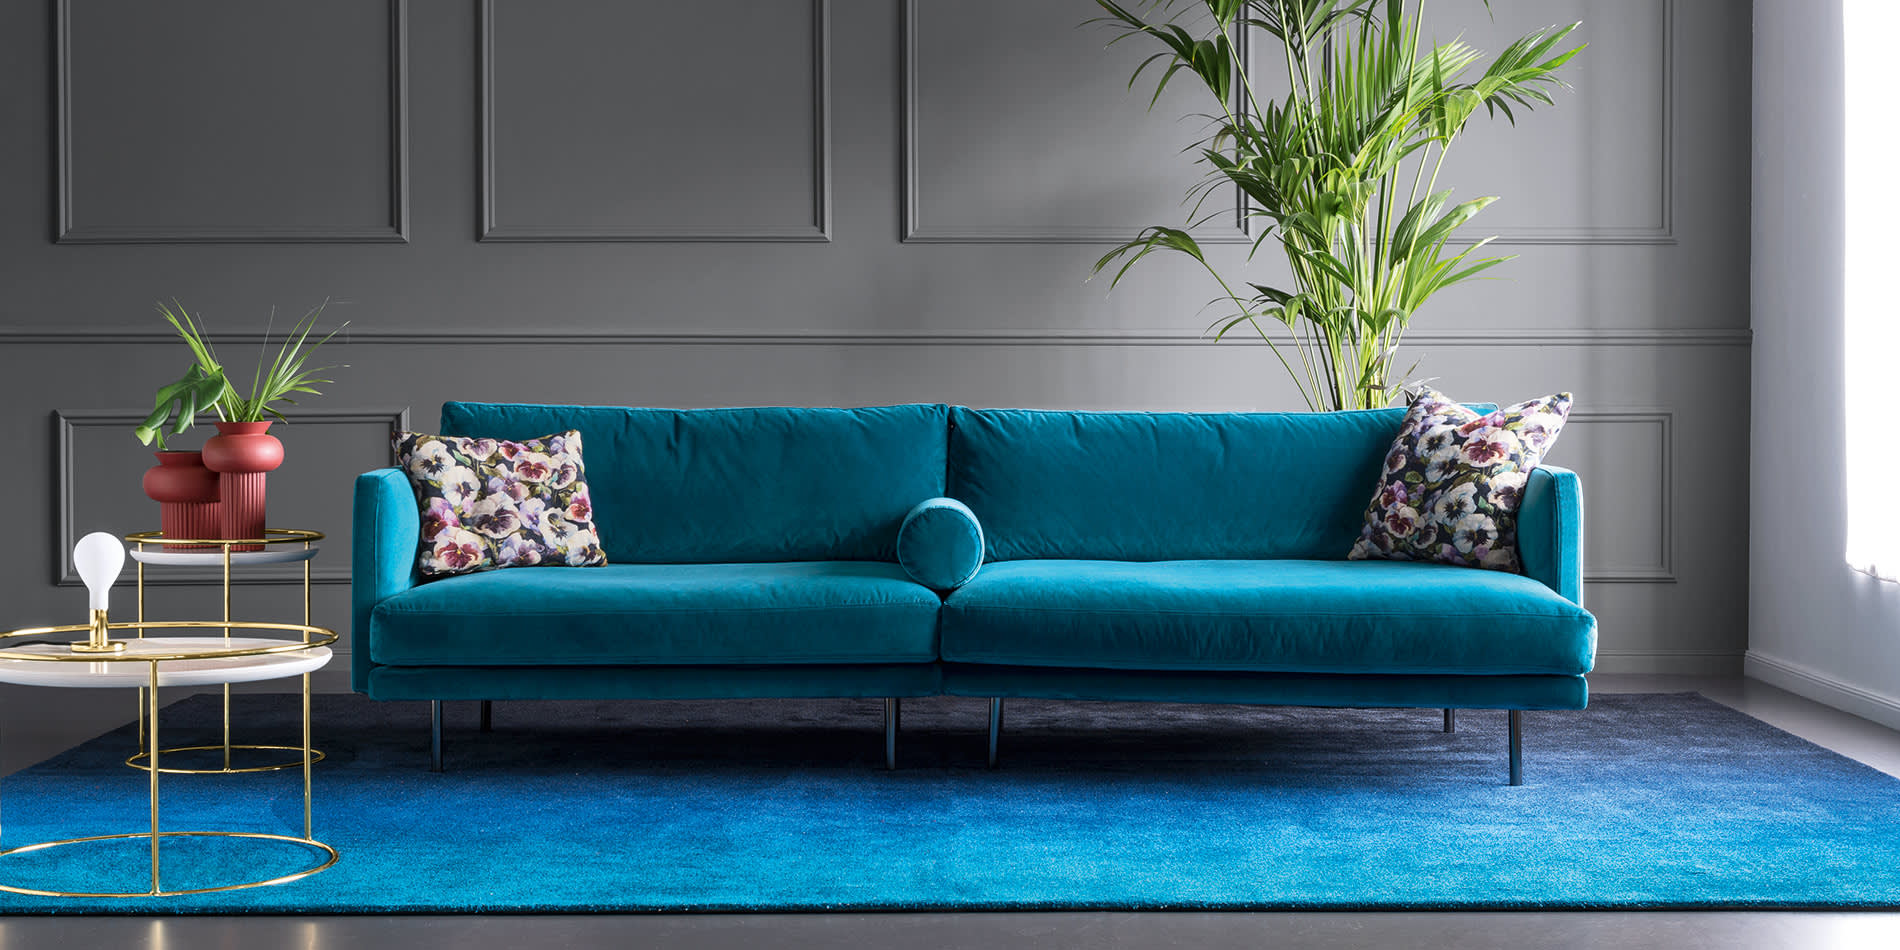 Voyager Furniture Interiors Homewares Sofas Tables